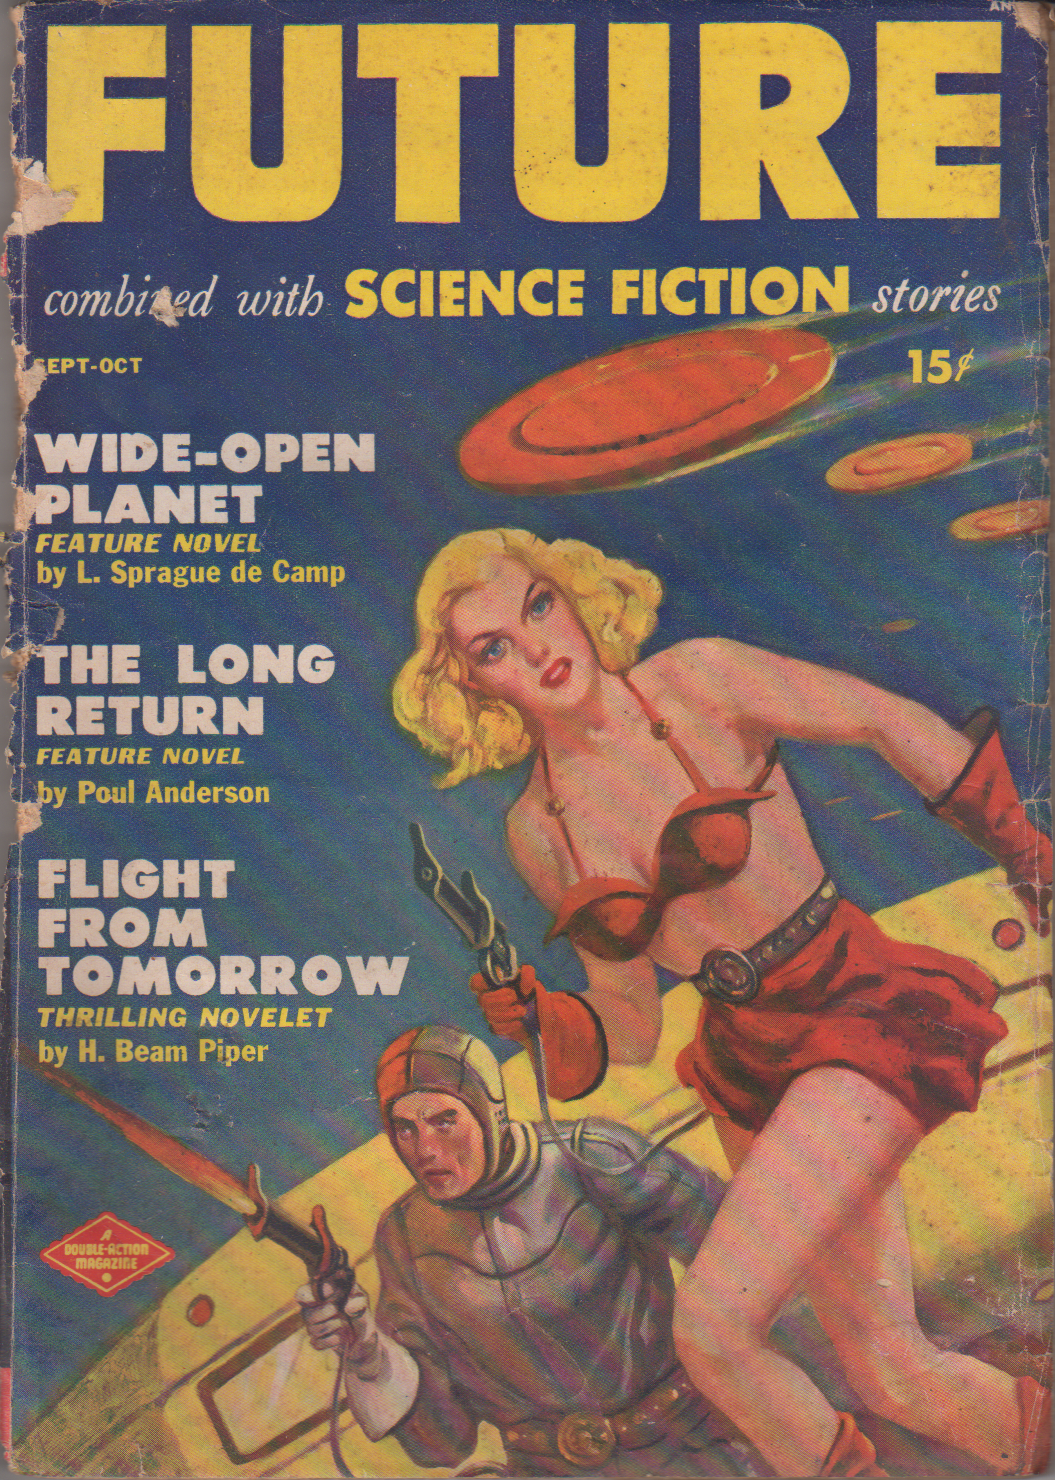 Image - Future combined with Science Fiction Stories, September/October 1950